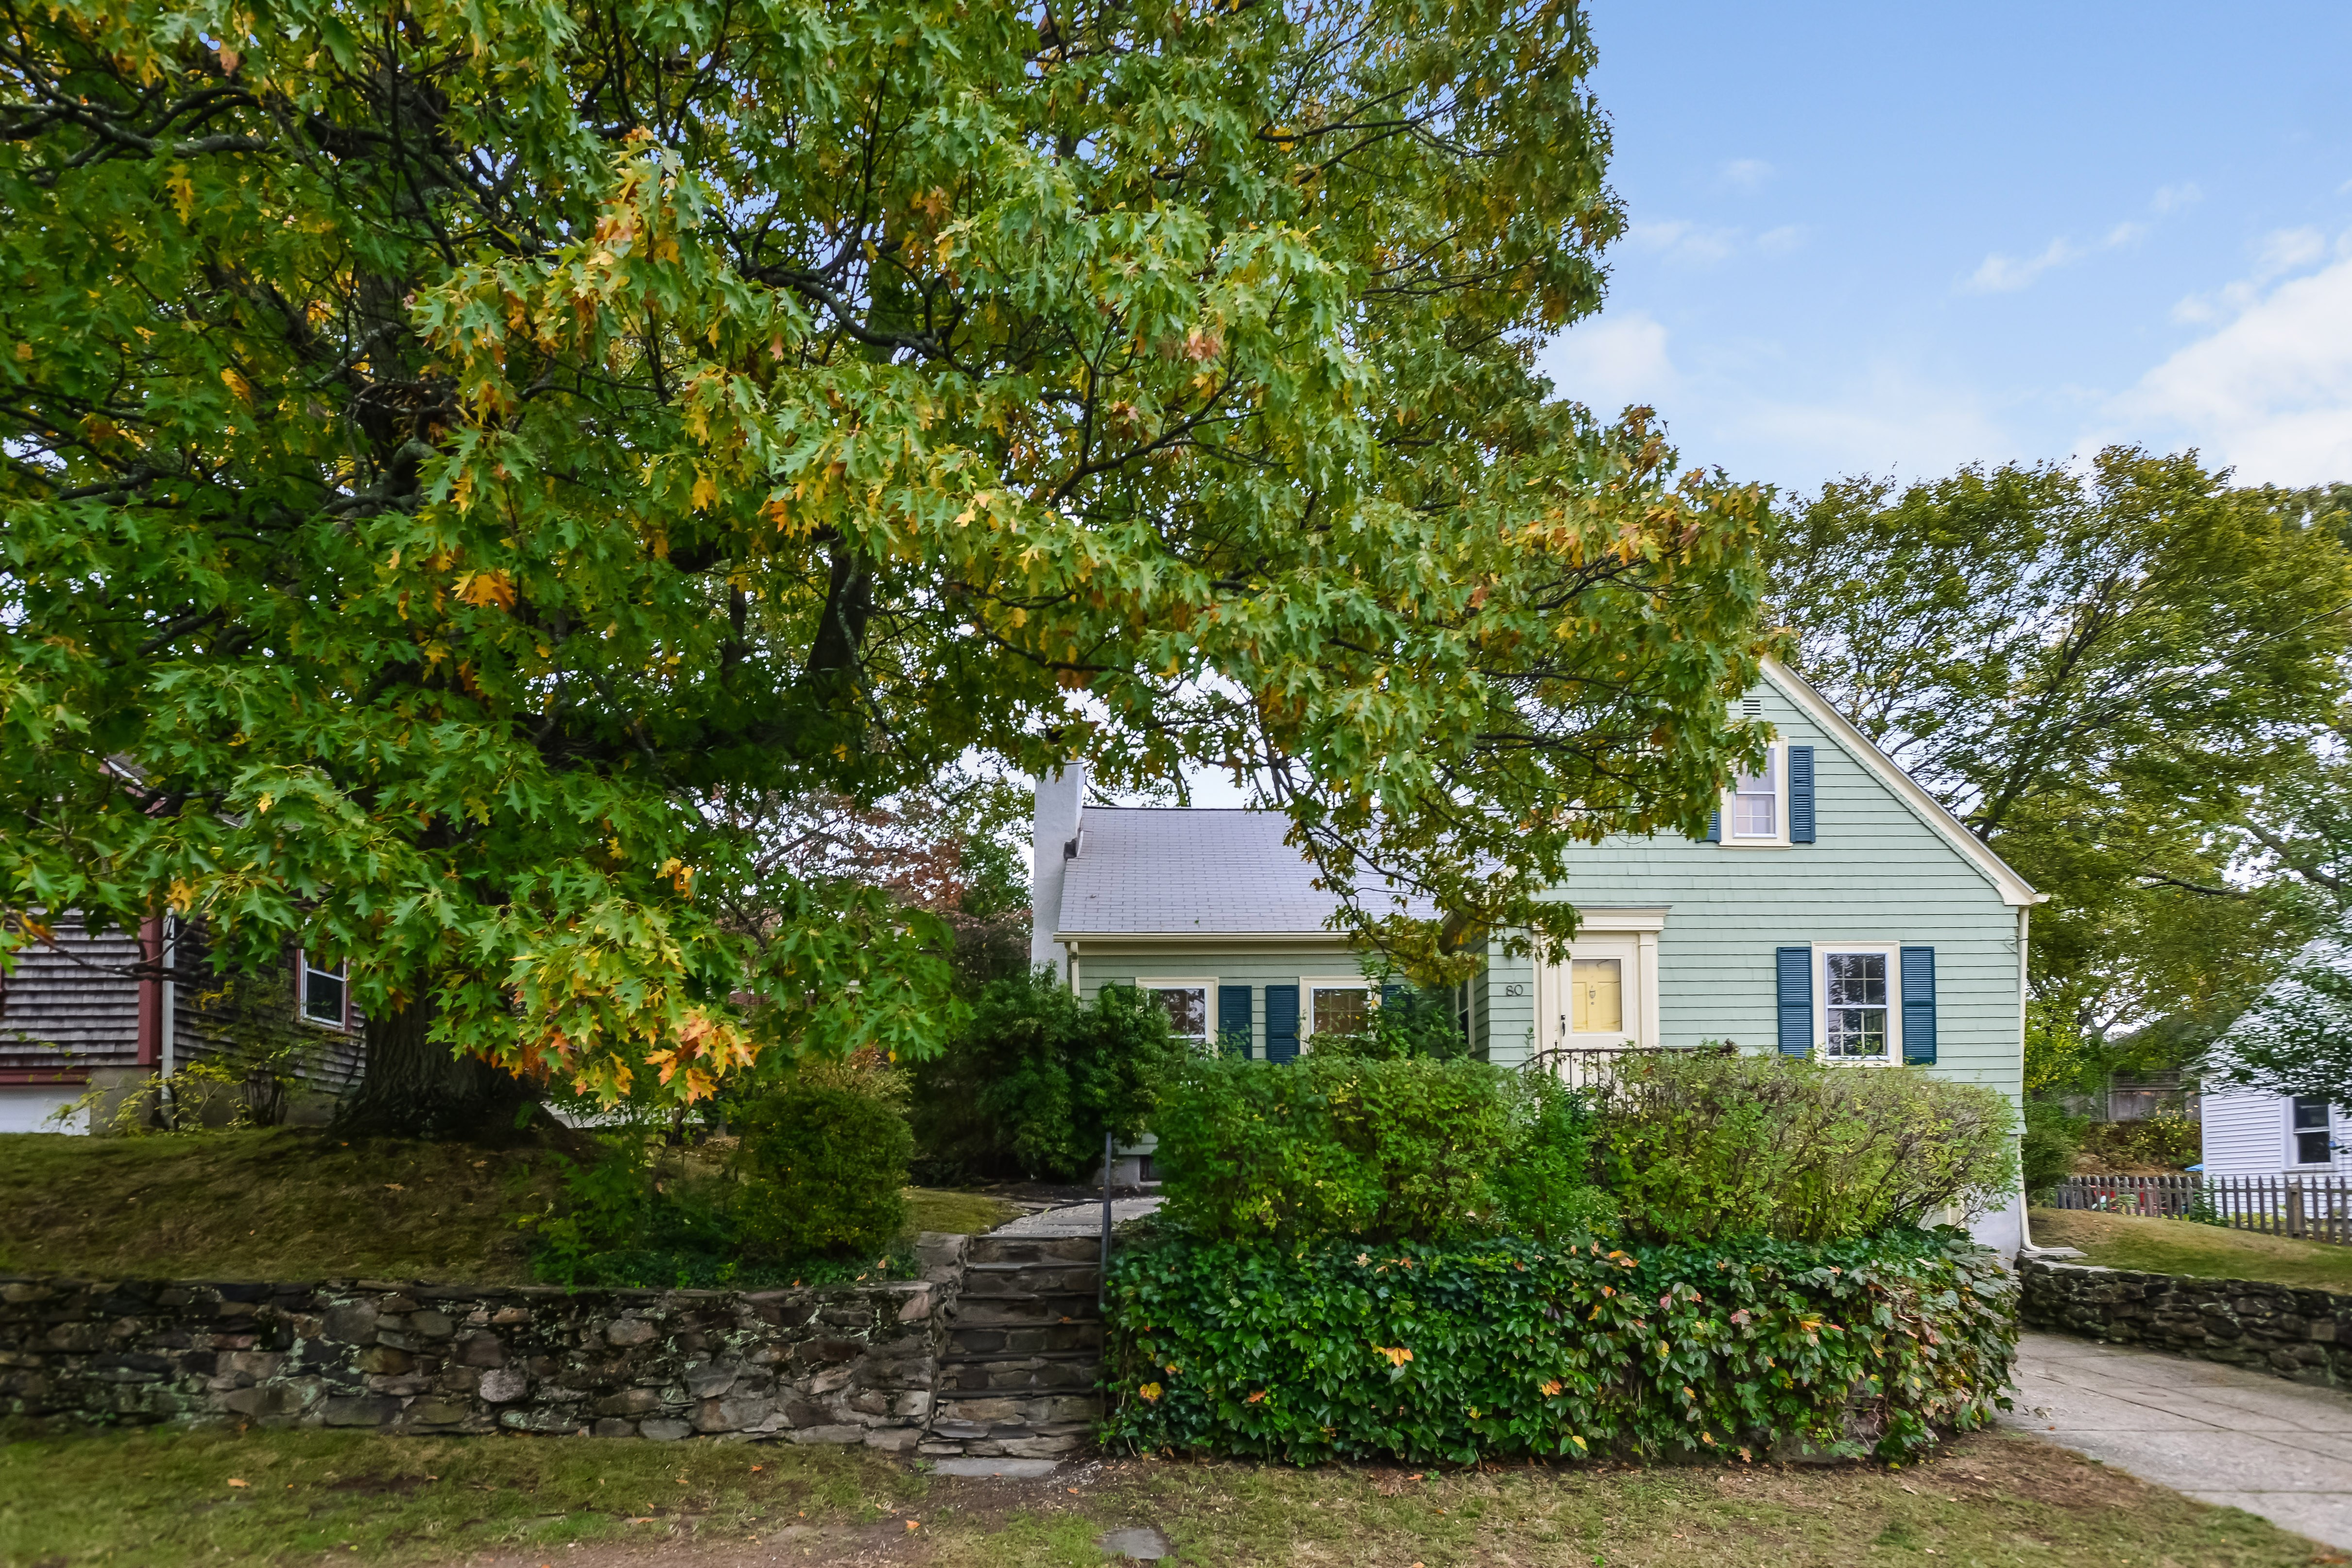 80 Blodgett AV, Oak Hill, Pawtucket, RI 02860